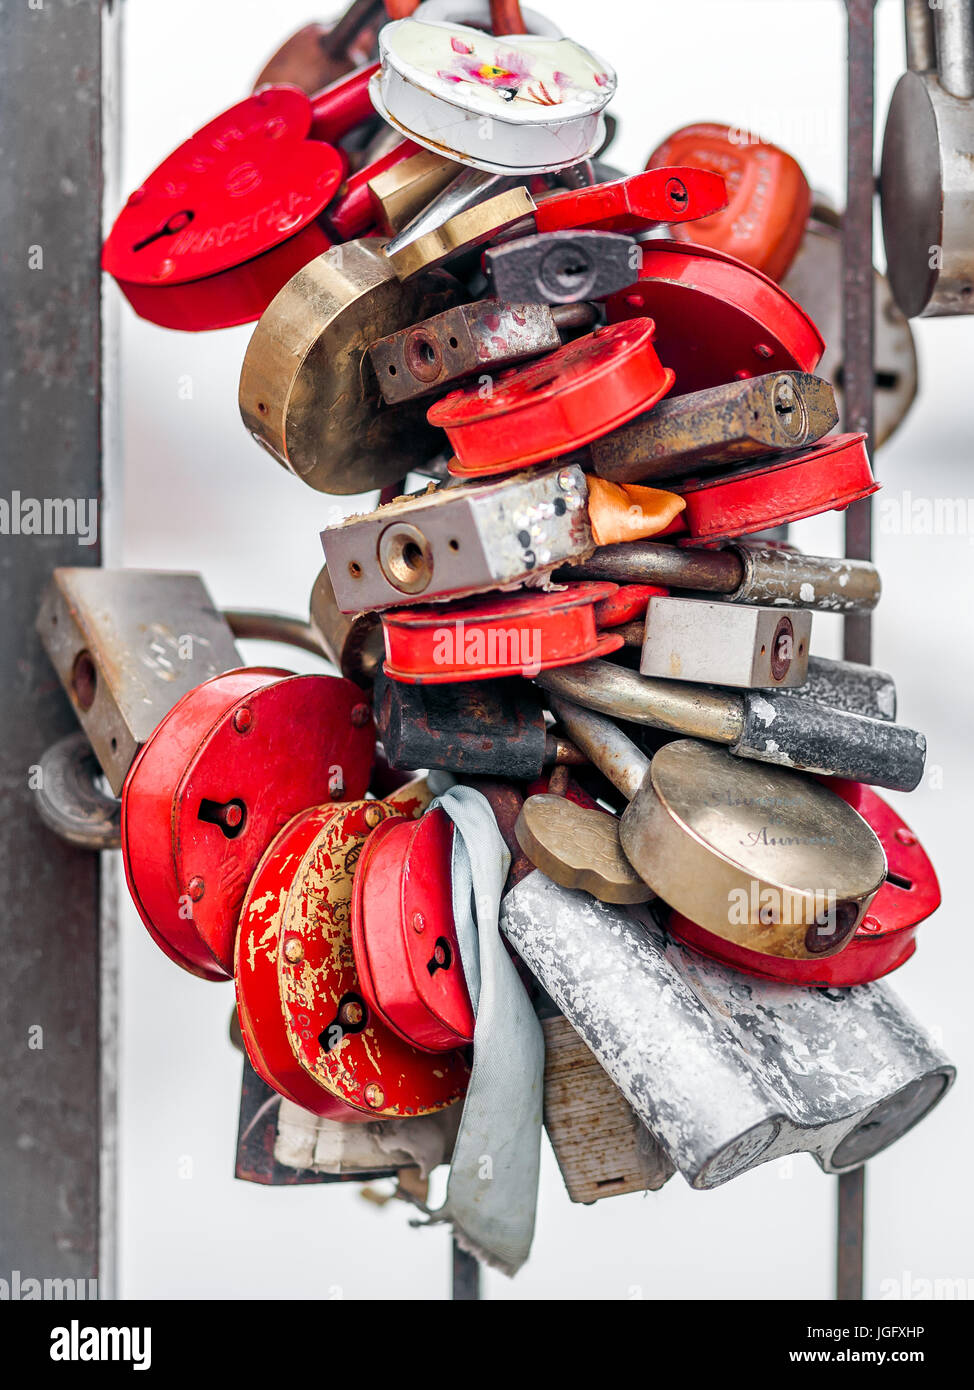 Bunch of padlocks. There are a lot of padlocks connected together. Different colors. Red, yellow, gold, silver. - Stock Image